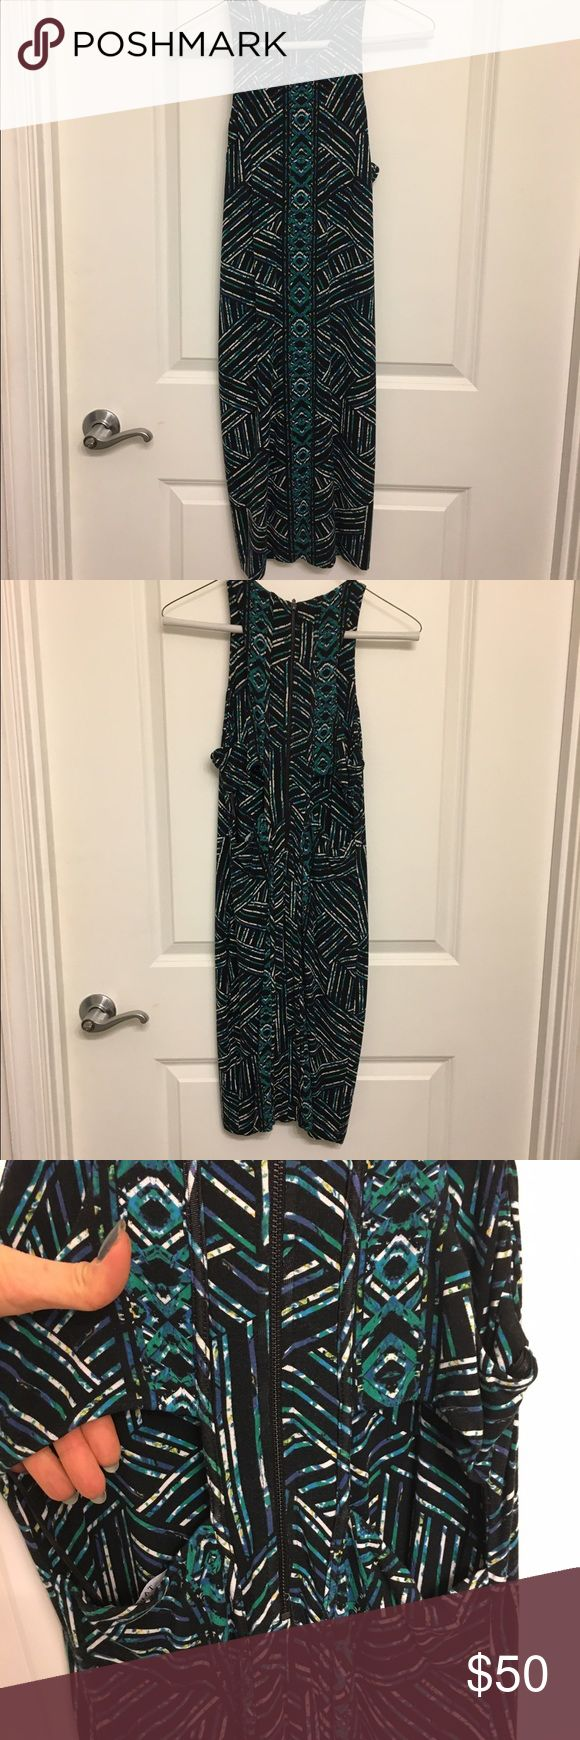 Tart multi dimensional color dress About 33 inches from shoulder to hemline.  Multi color (blue,green, white and black print) cut outs in the back.  Sexy, going out dress. Nice, semi thick, quality material.  Worn once. Tart Dresses Mini